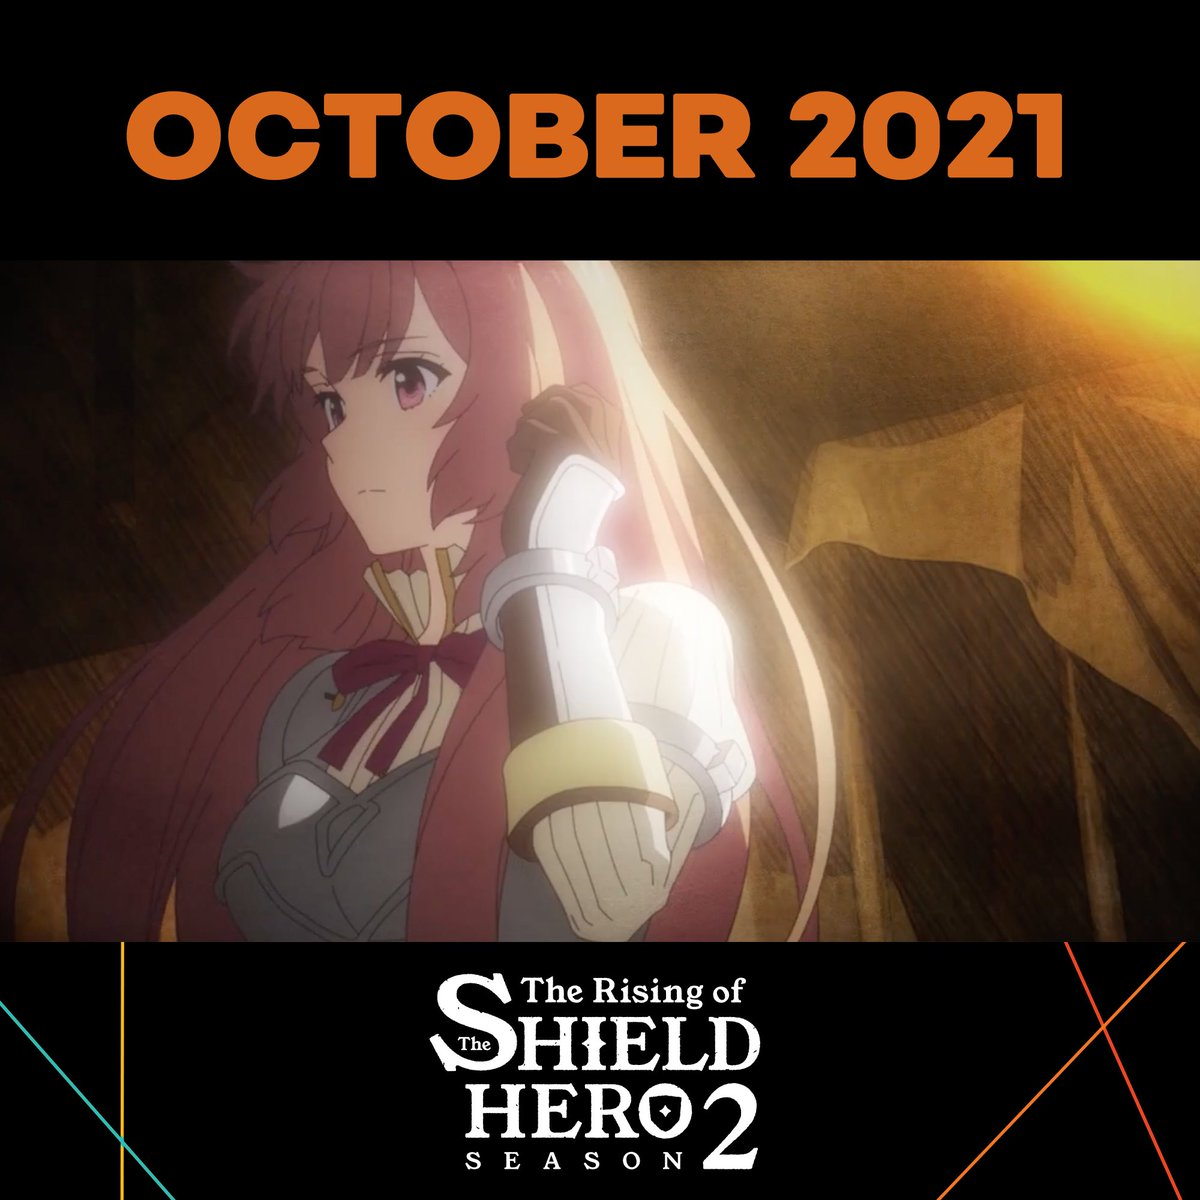 Replying to @Crunchyroll: The Rising of the Shield Hero 2 comes to Crunchyroll this October! 🛡